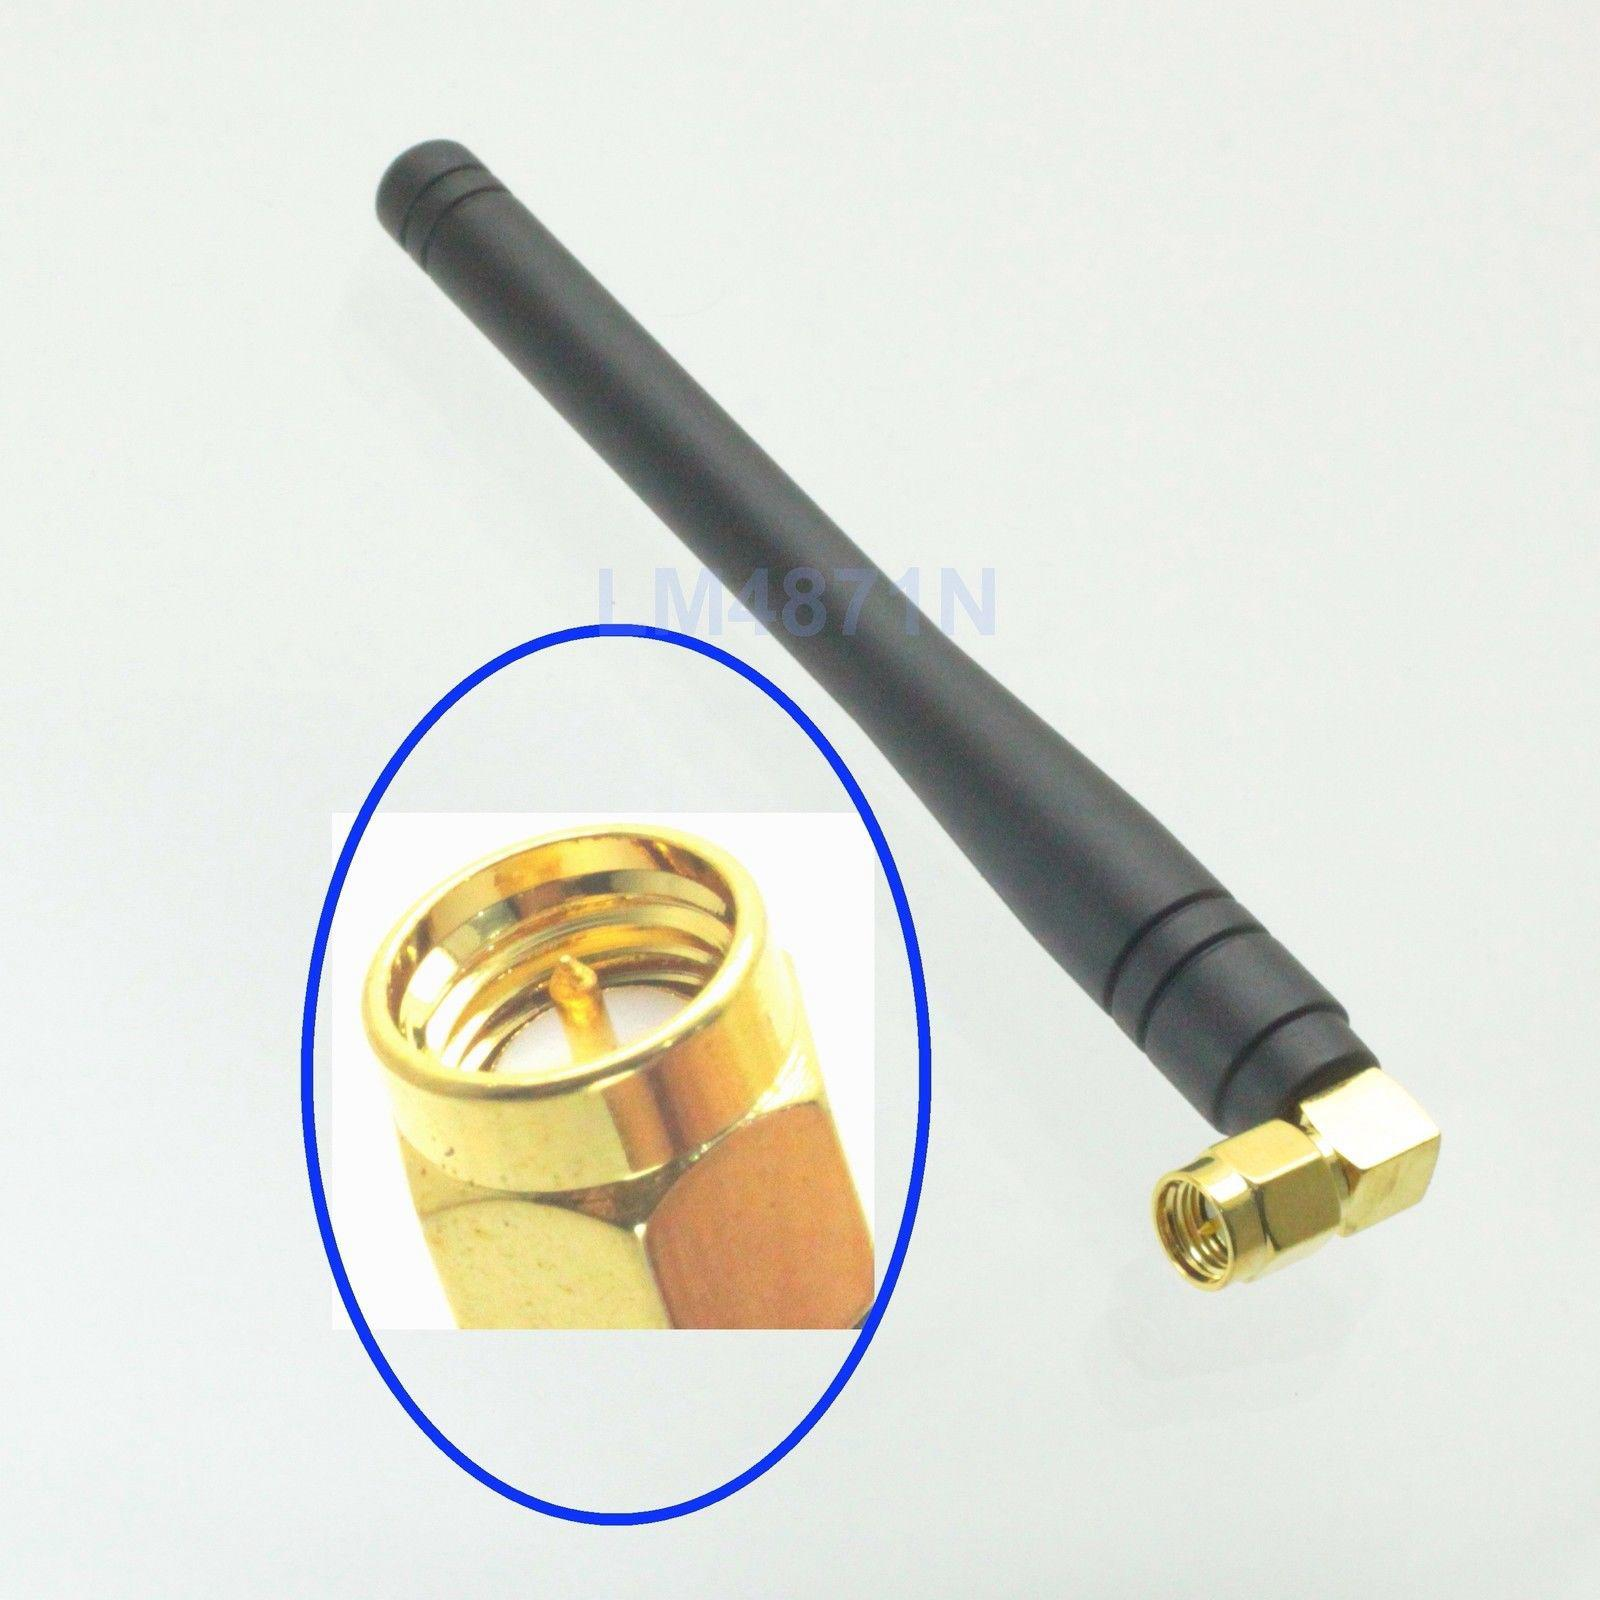 Antenna 433MHz GSM GPRS 90° SMA Male Plug Right Angle 10cm Gold